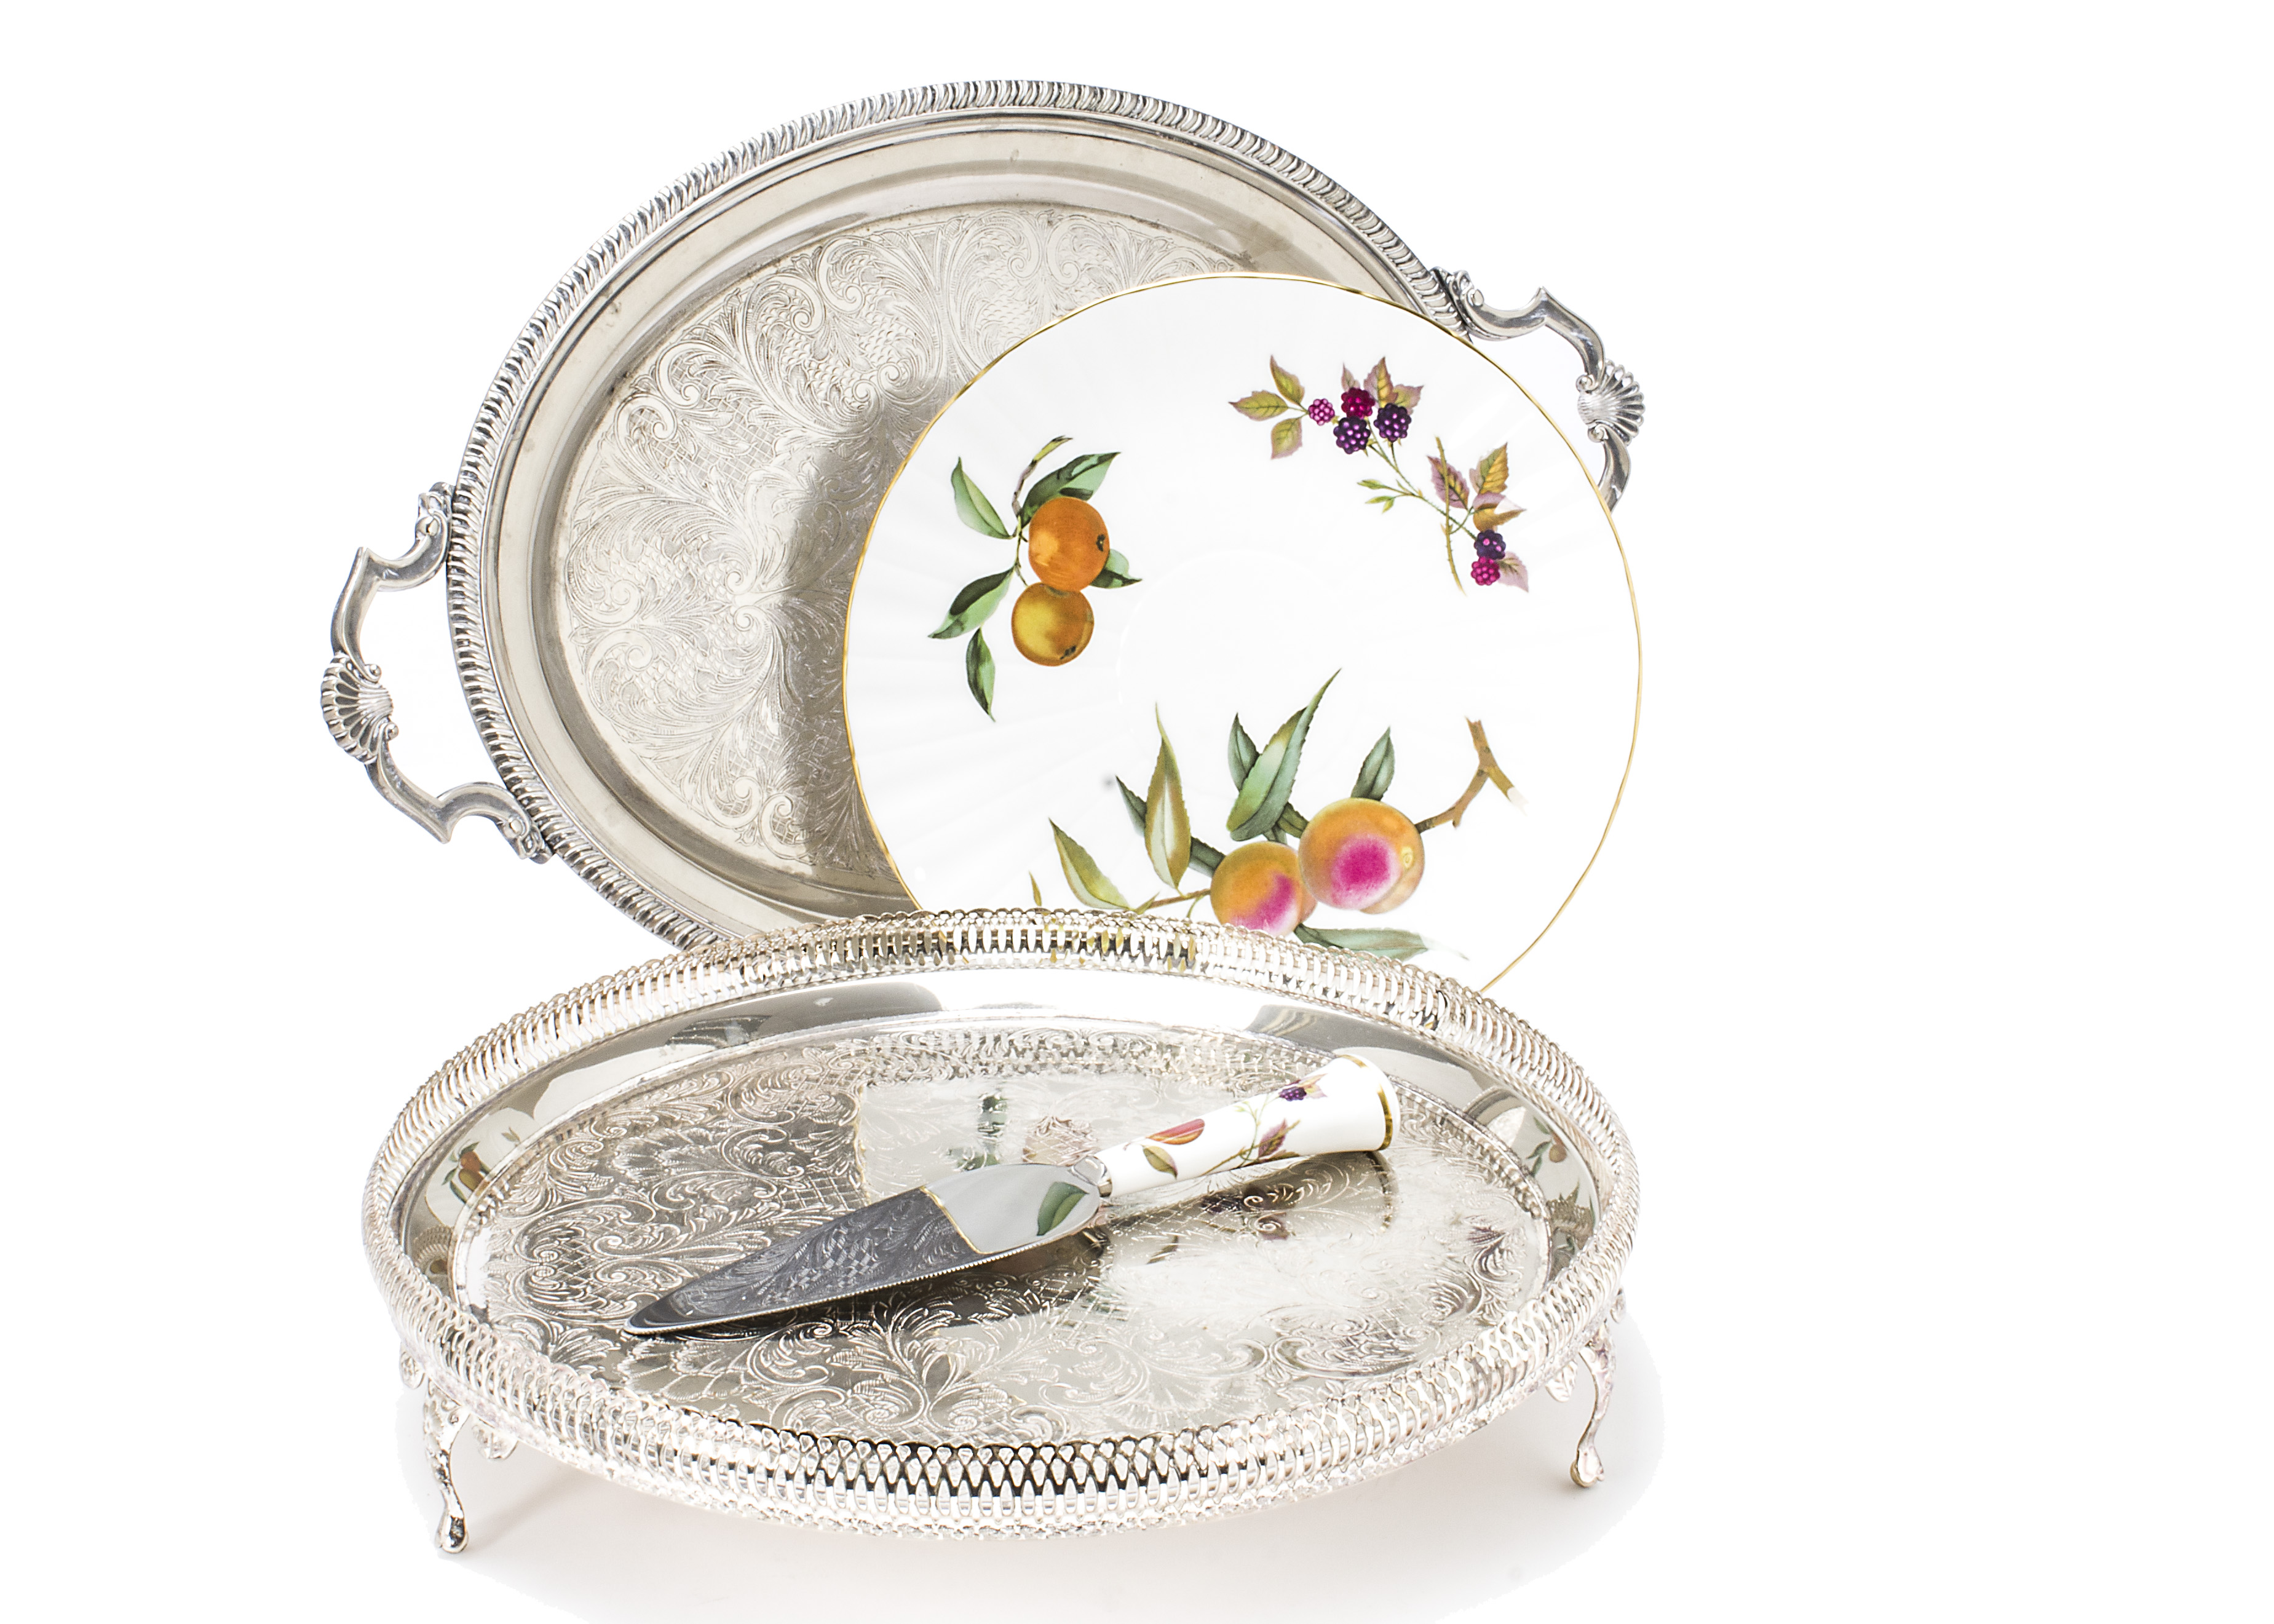 Lot 25 - A collection of silver plate and jewellery, including a tea set, two trays, along with a 9ct gold